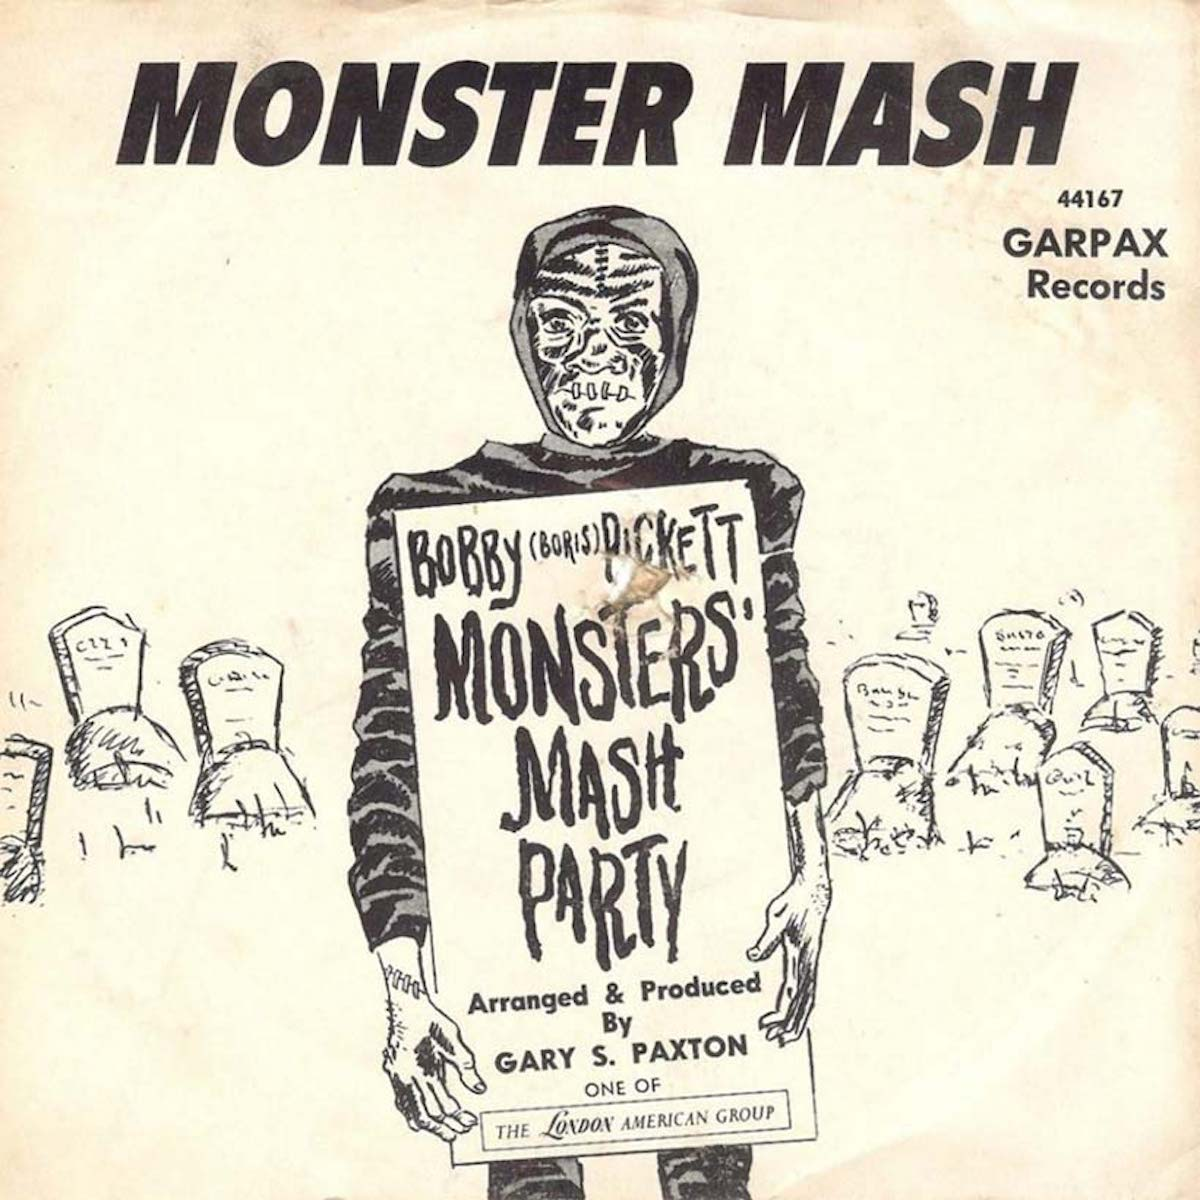 monster mash record, a 1960s one-hit wonder